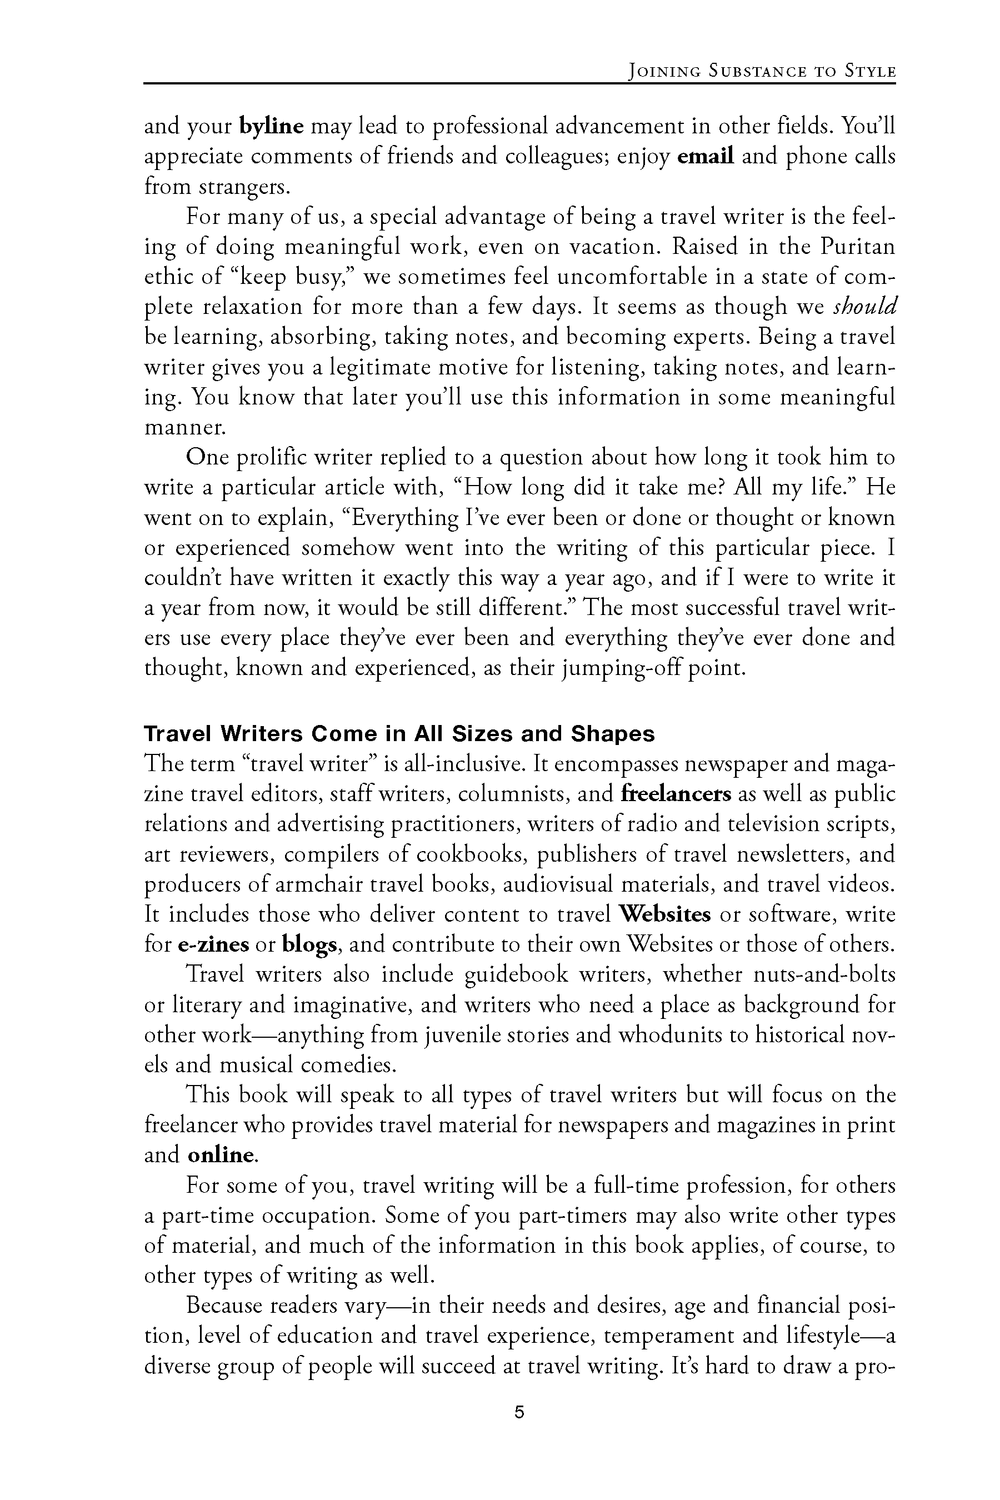 Travel Writer's Handbook_Page_07.png